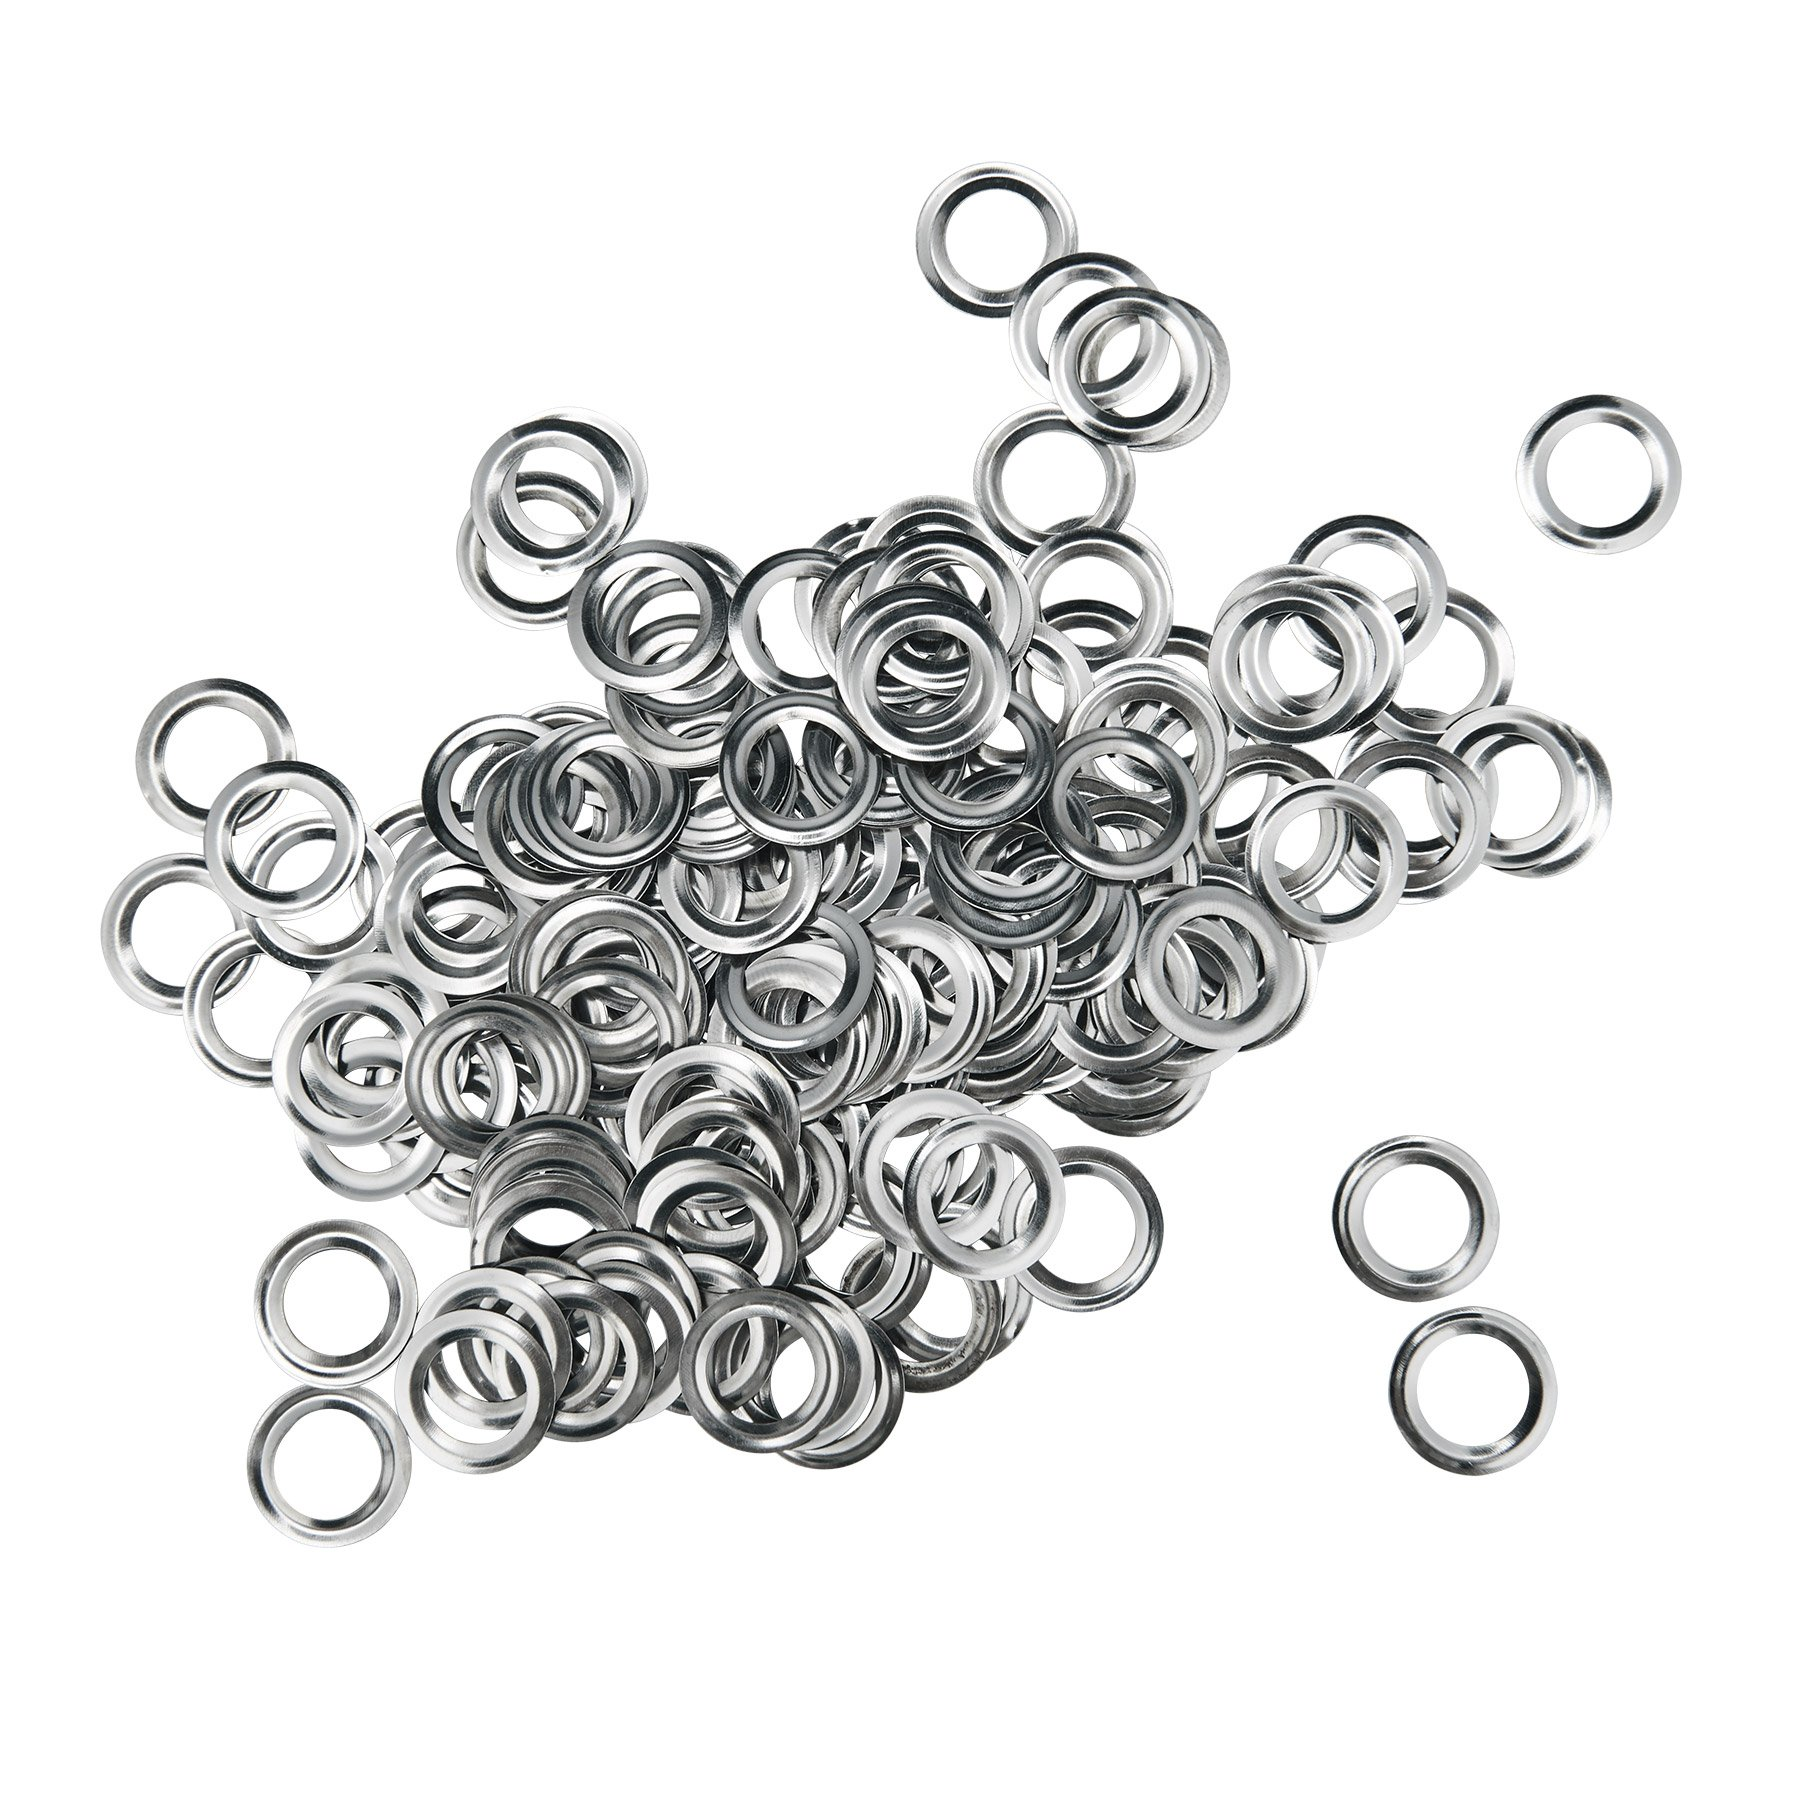 Pinty 1000 Grommets + 1000 Washers - Nickel Finish - #2 Size, 3/8'' Eyelets by Pinty (Image #4)